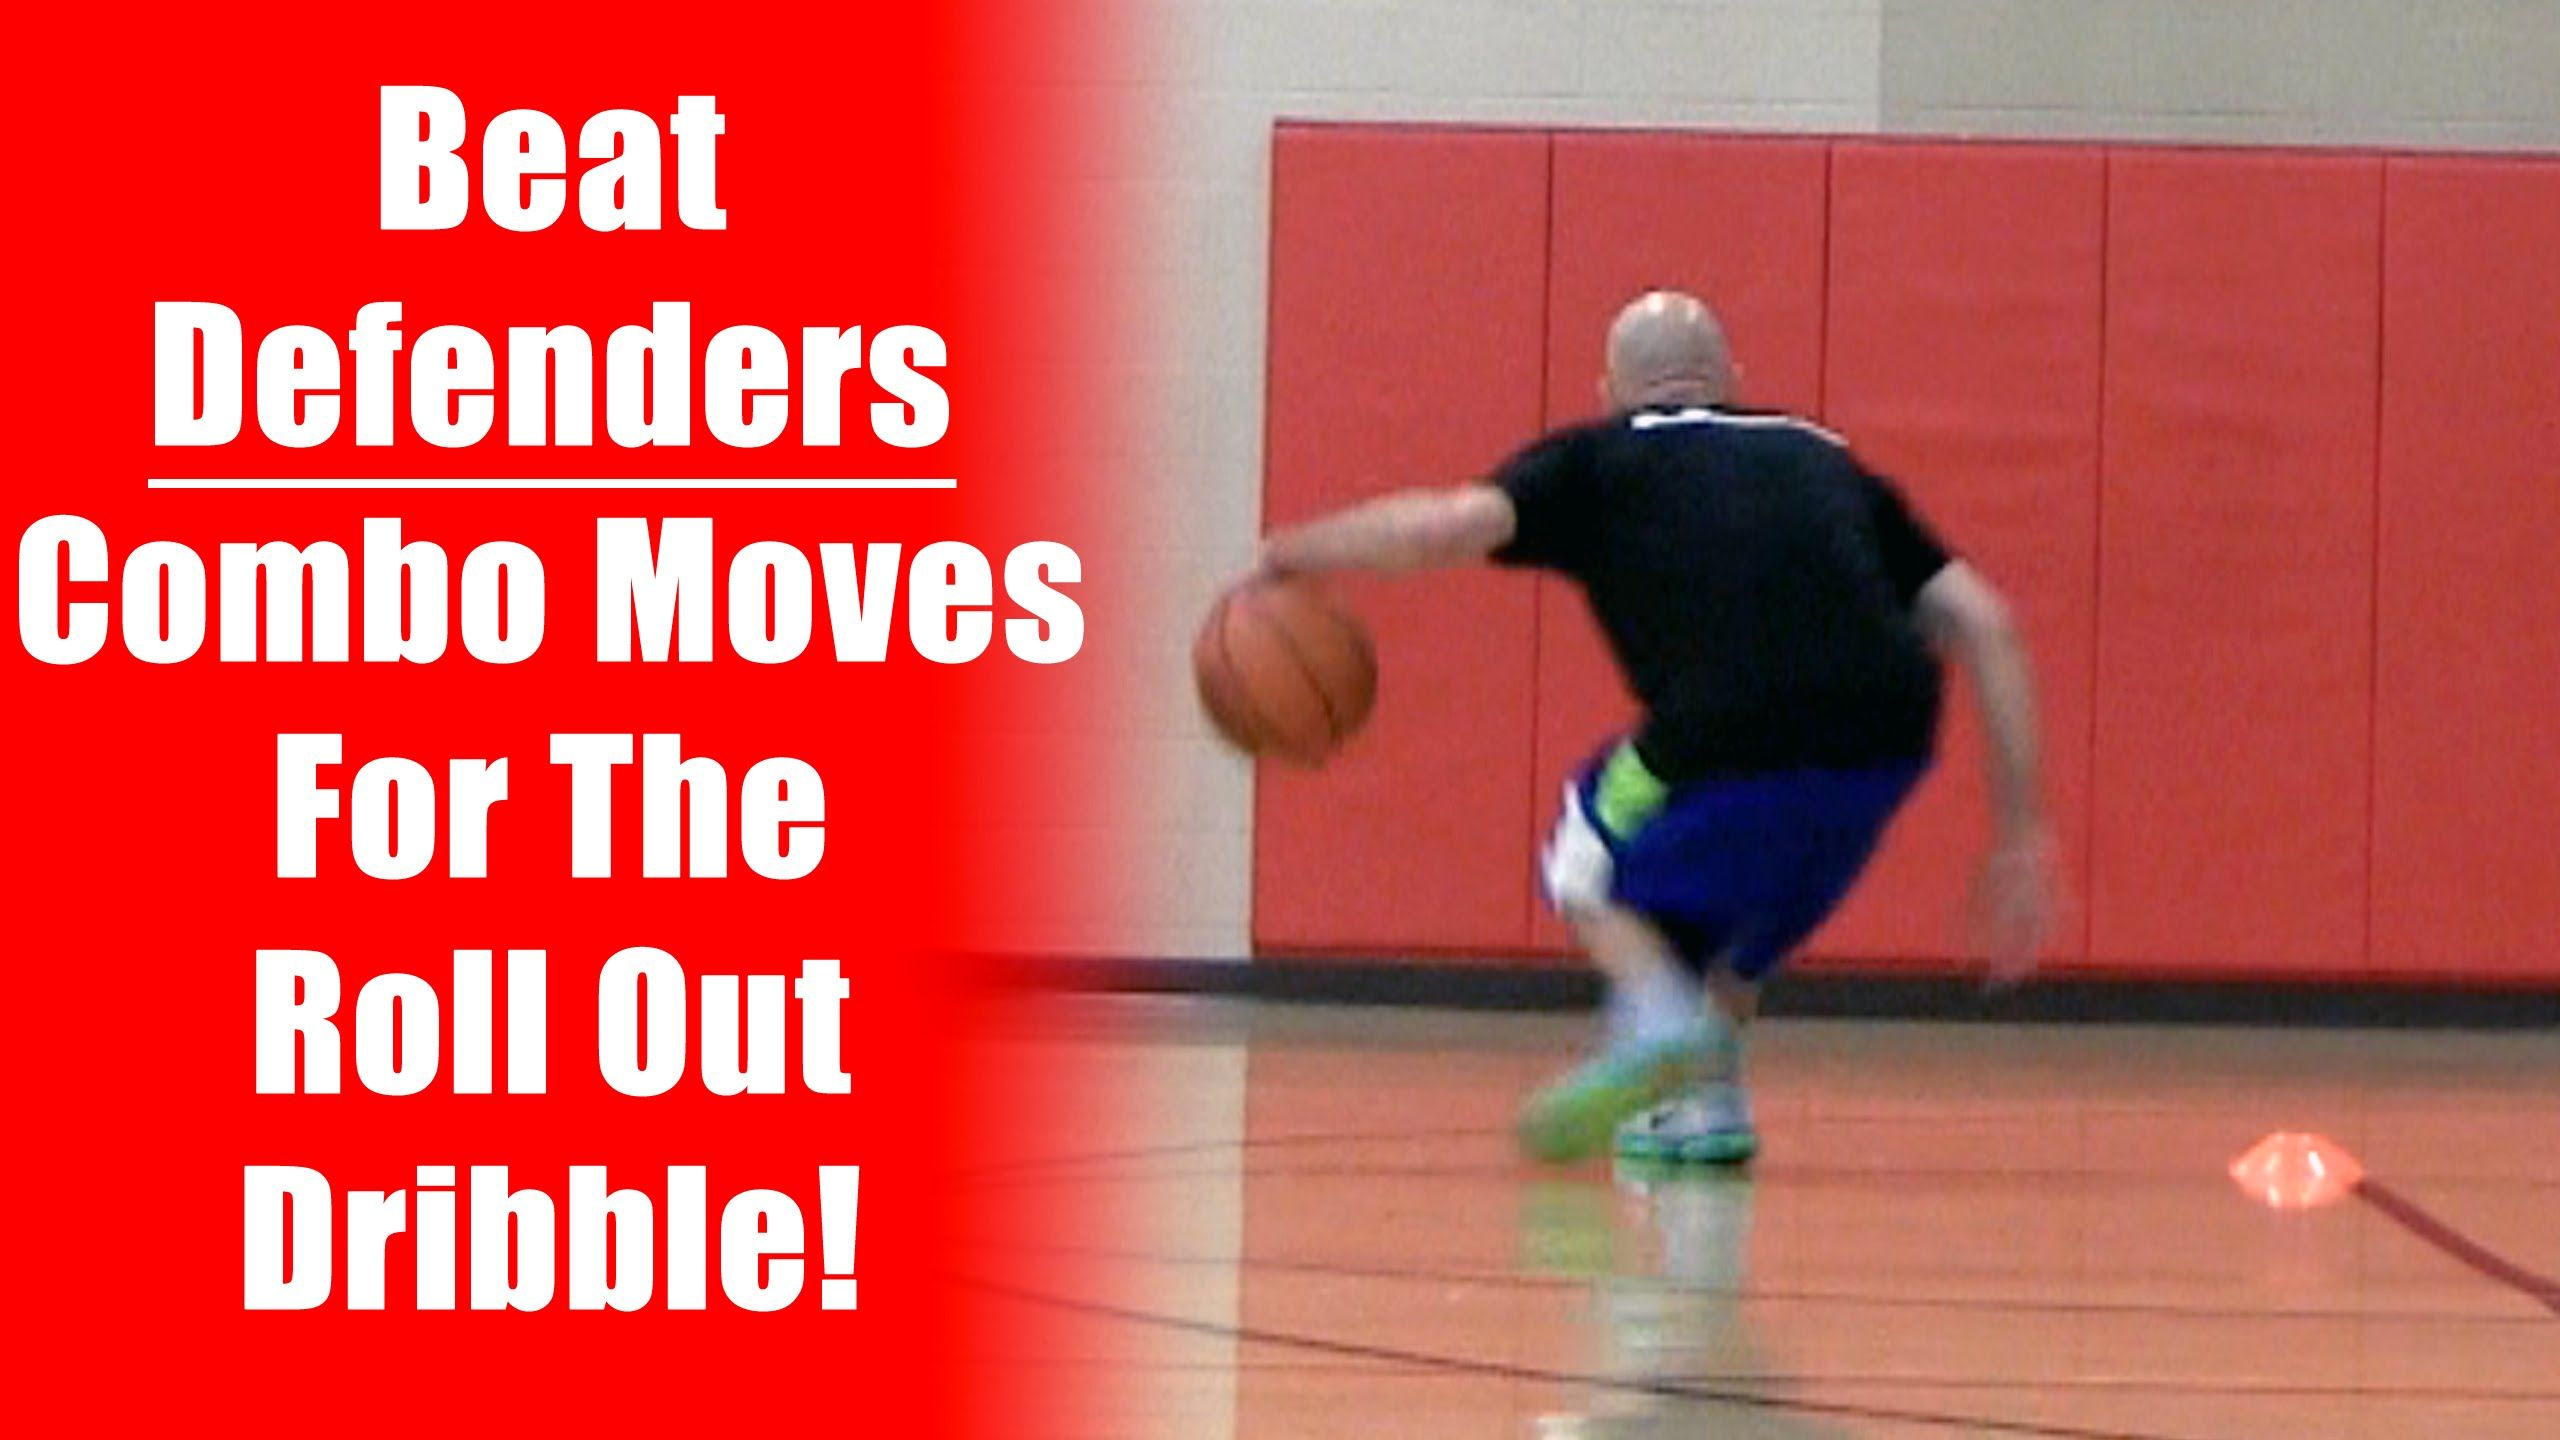 Basketball moves to get past defenders roll out behind